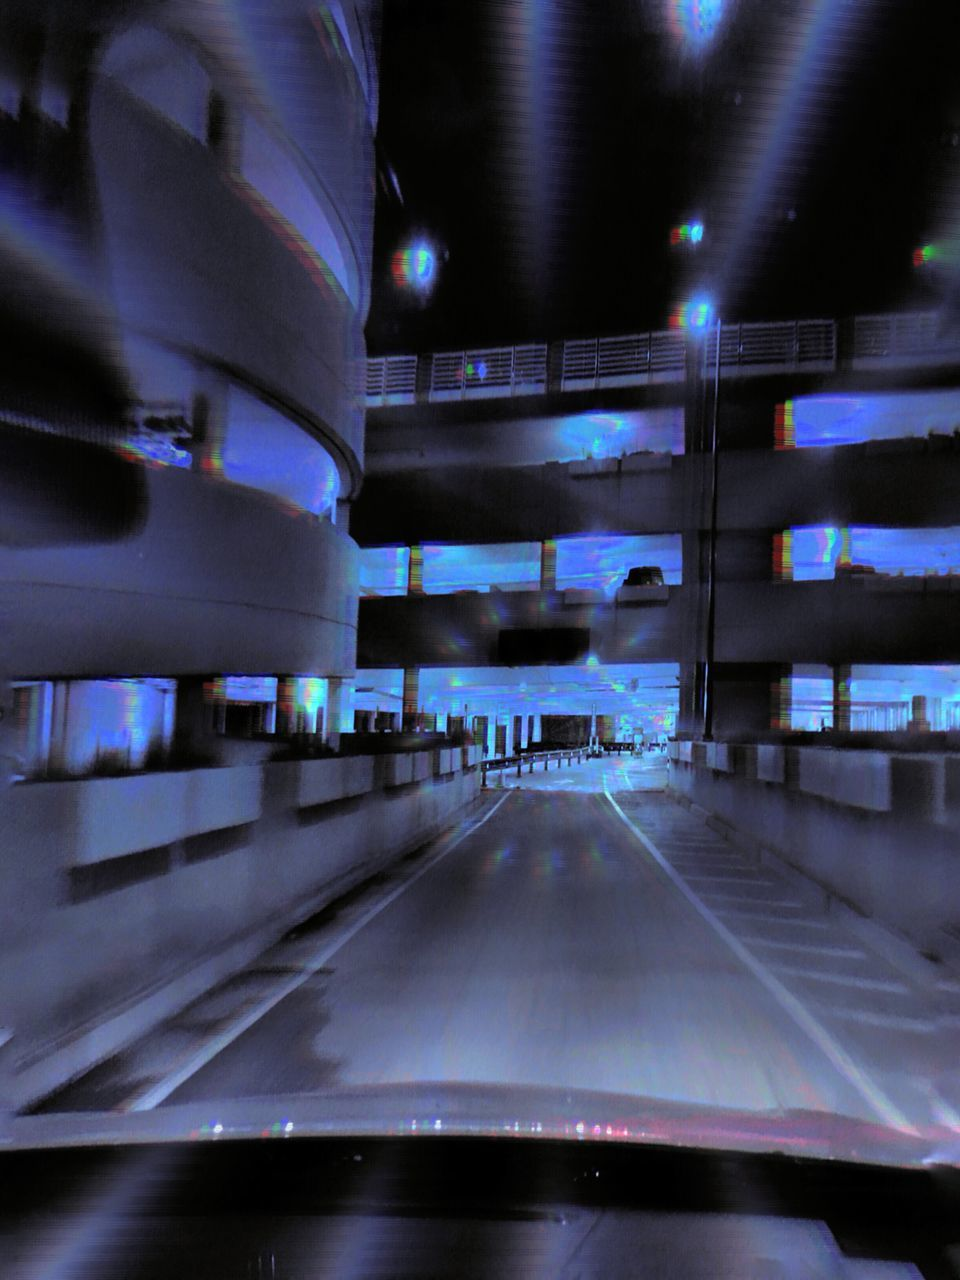 illuminated, transportation, night, the way forward, architecture, built structure, indoors, road, no people, parking garage